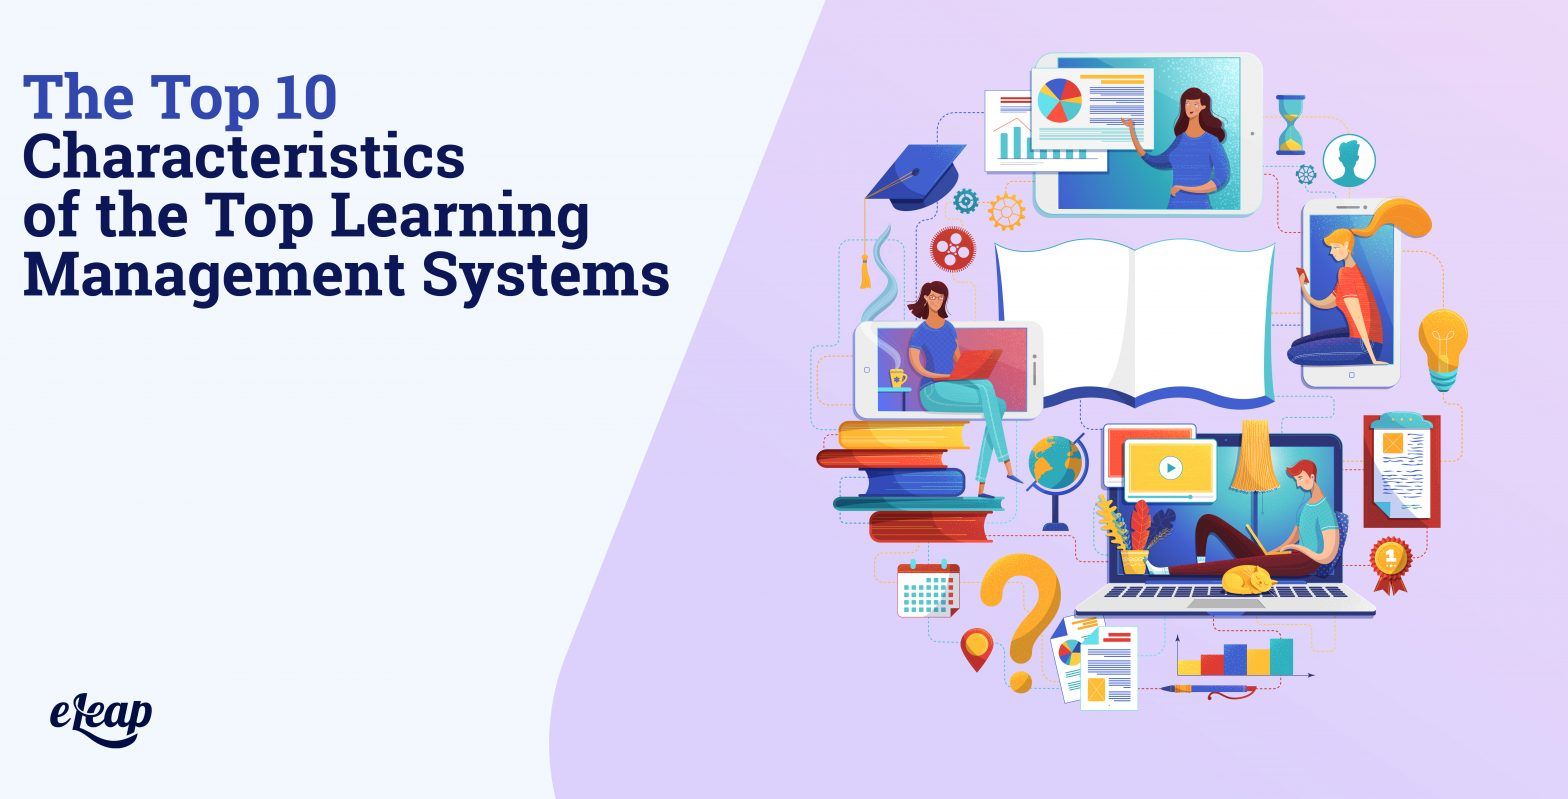 The Top 10 Characteristics of the Top Learning Management Systems